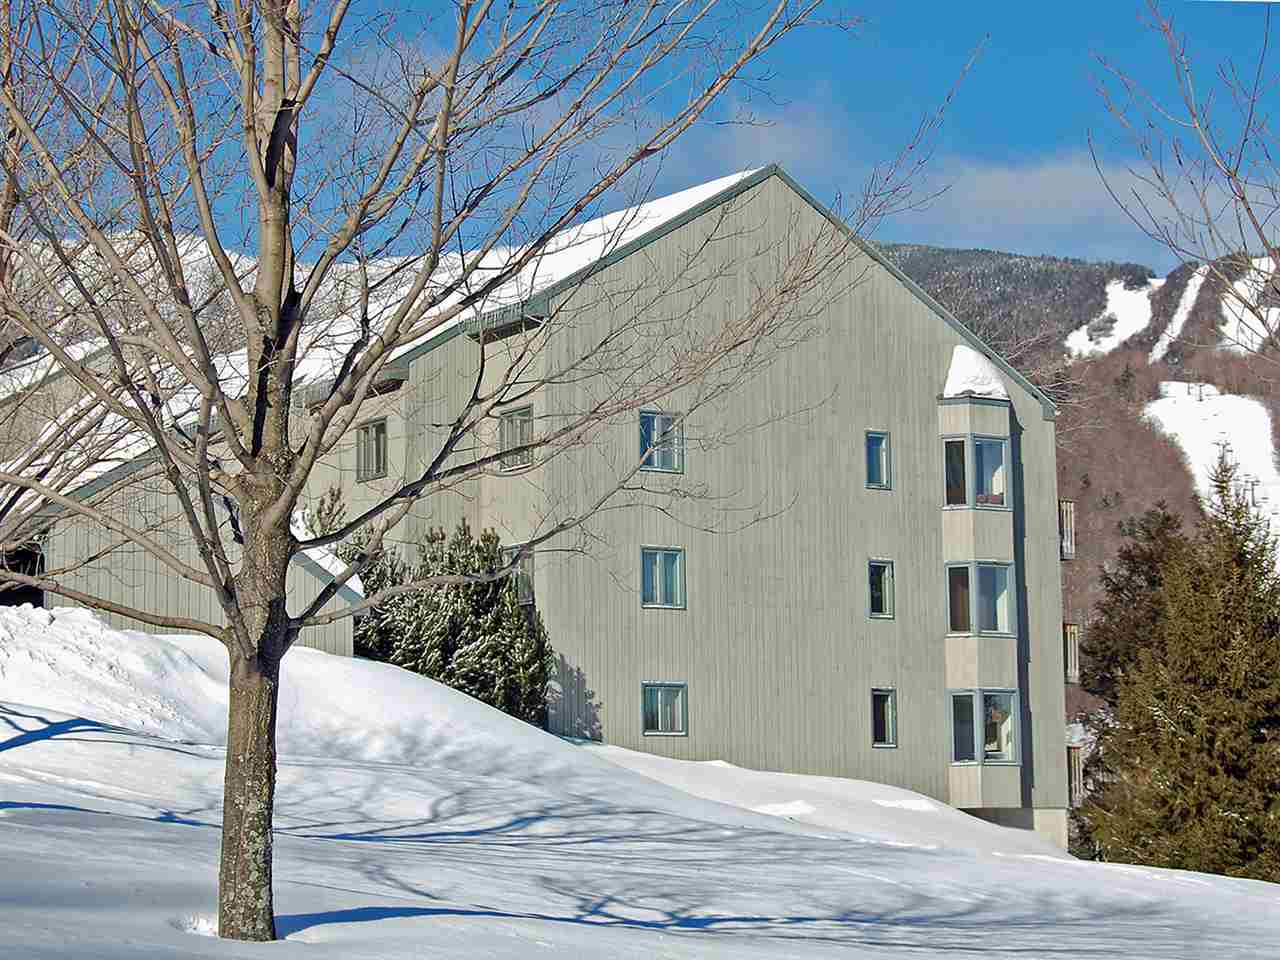 122 Snow Creek